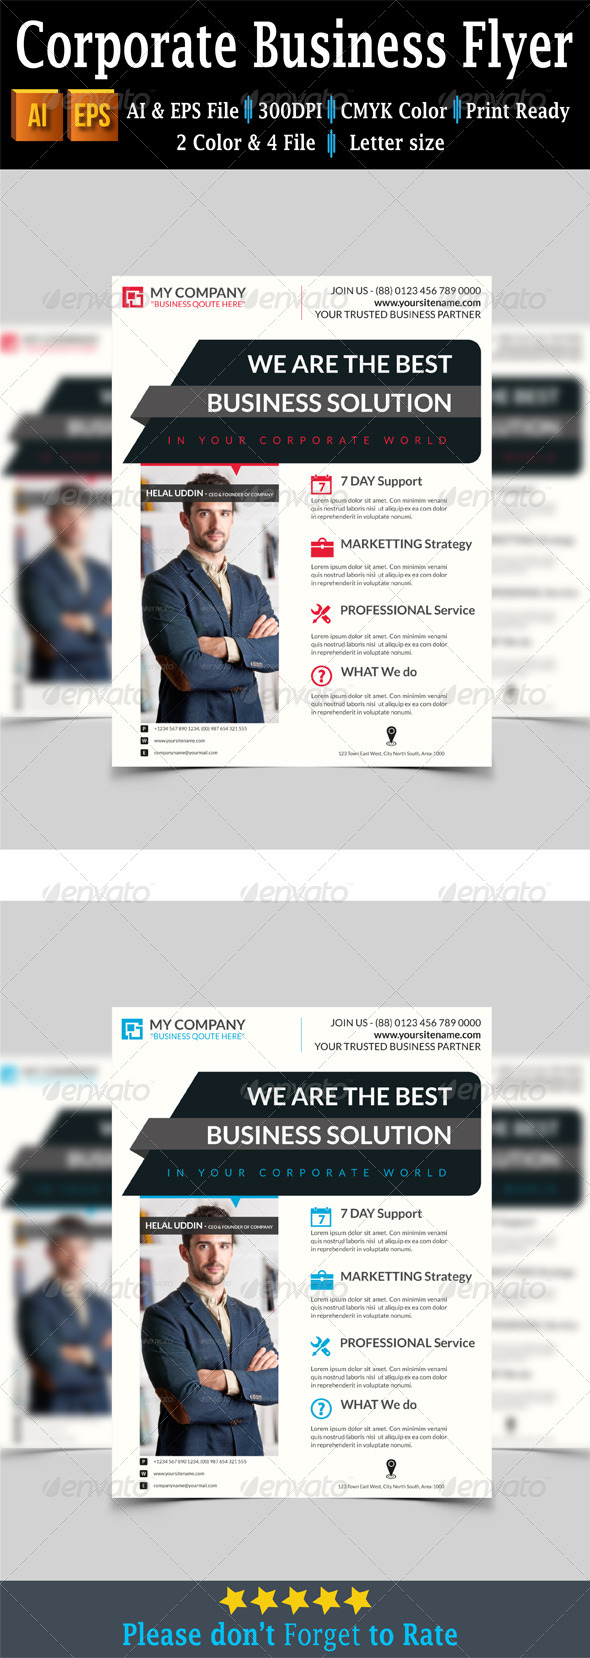 GraphicRiver Corporate Business Flyer 7760610